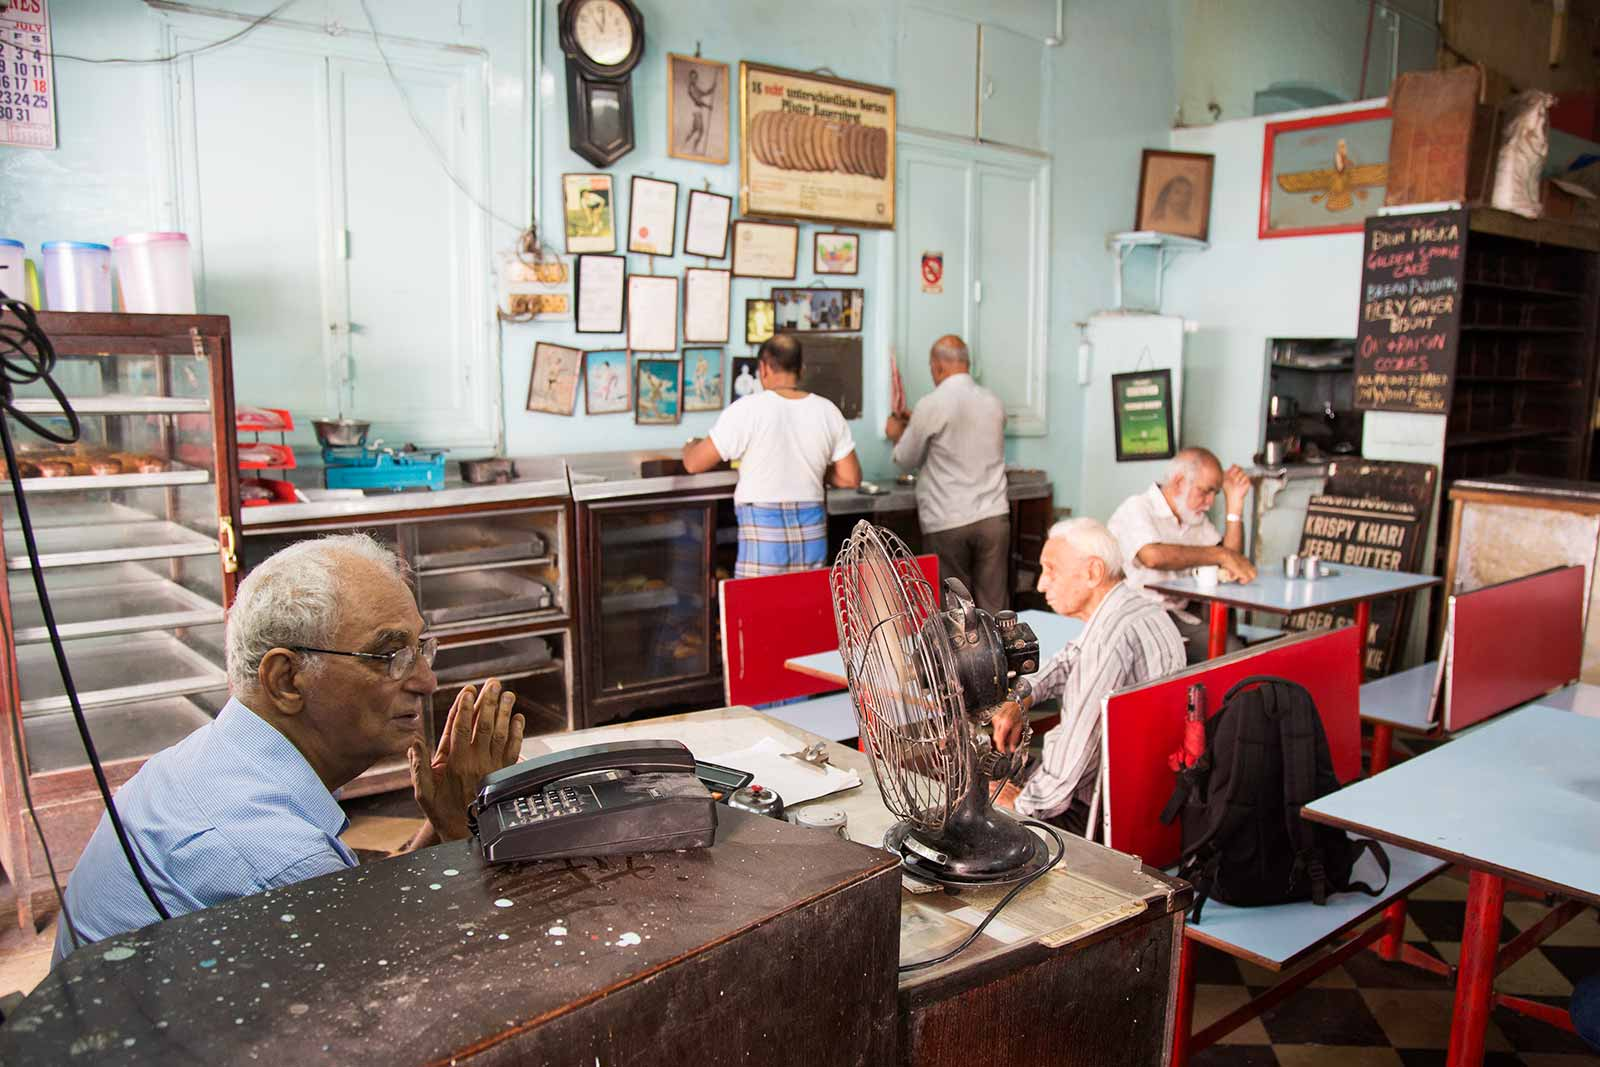 Yazdani Restaurant & Bakery was opened in Mumbai in 1953 by Meherwan Zend. Today, the three brothers, Rashid, Zend, Parvez and his son, Tirandaz run the bakery.